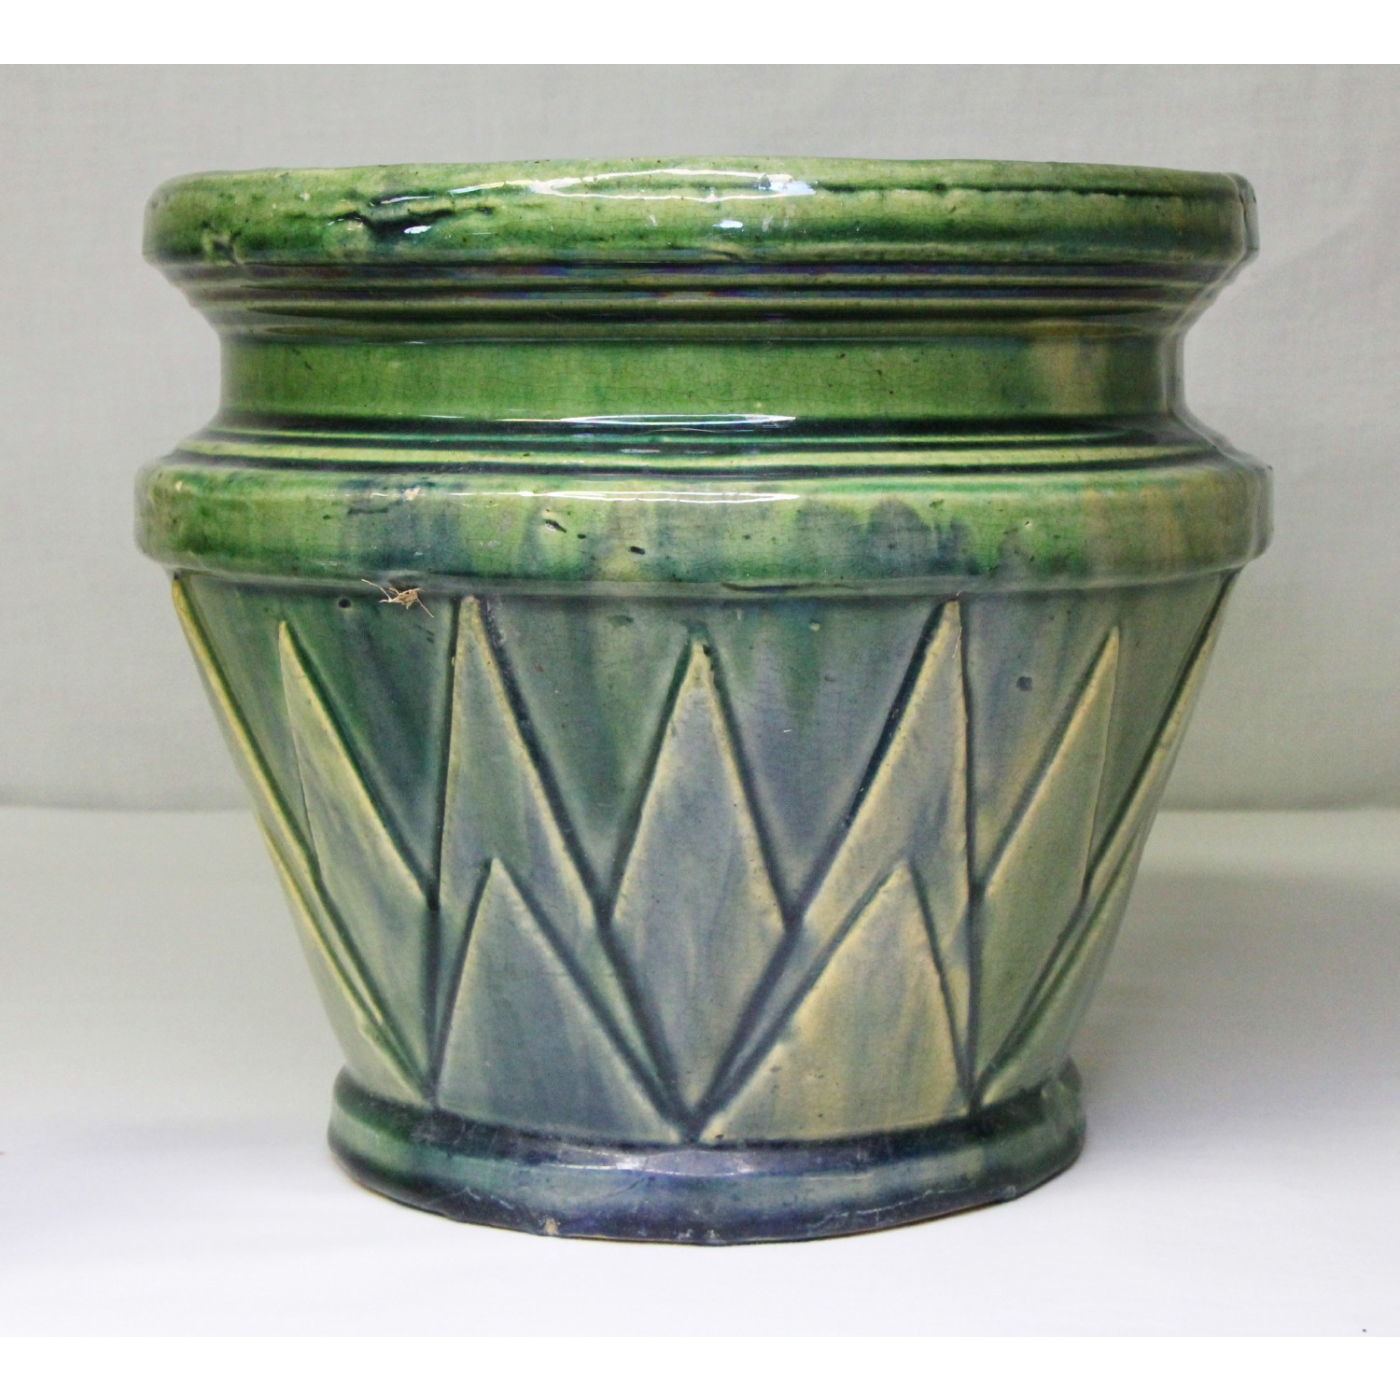 Fabulous Blended-Glaze Green and Blue Jardiniere